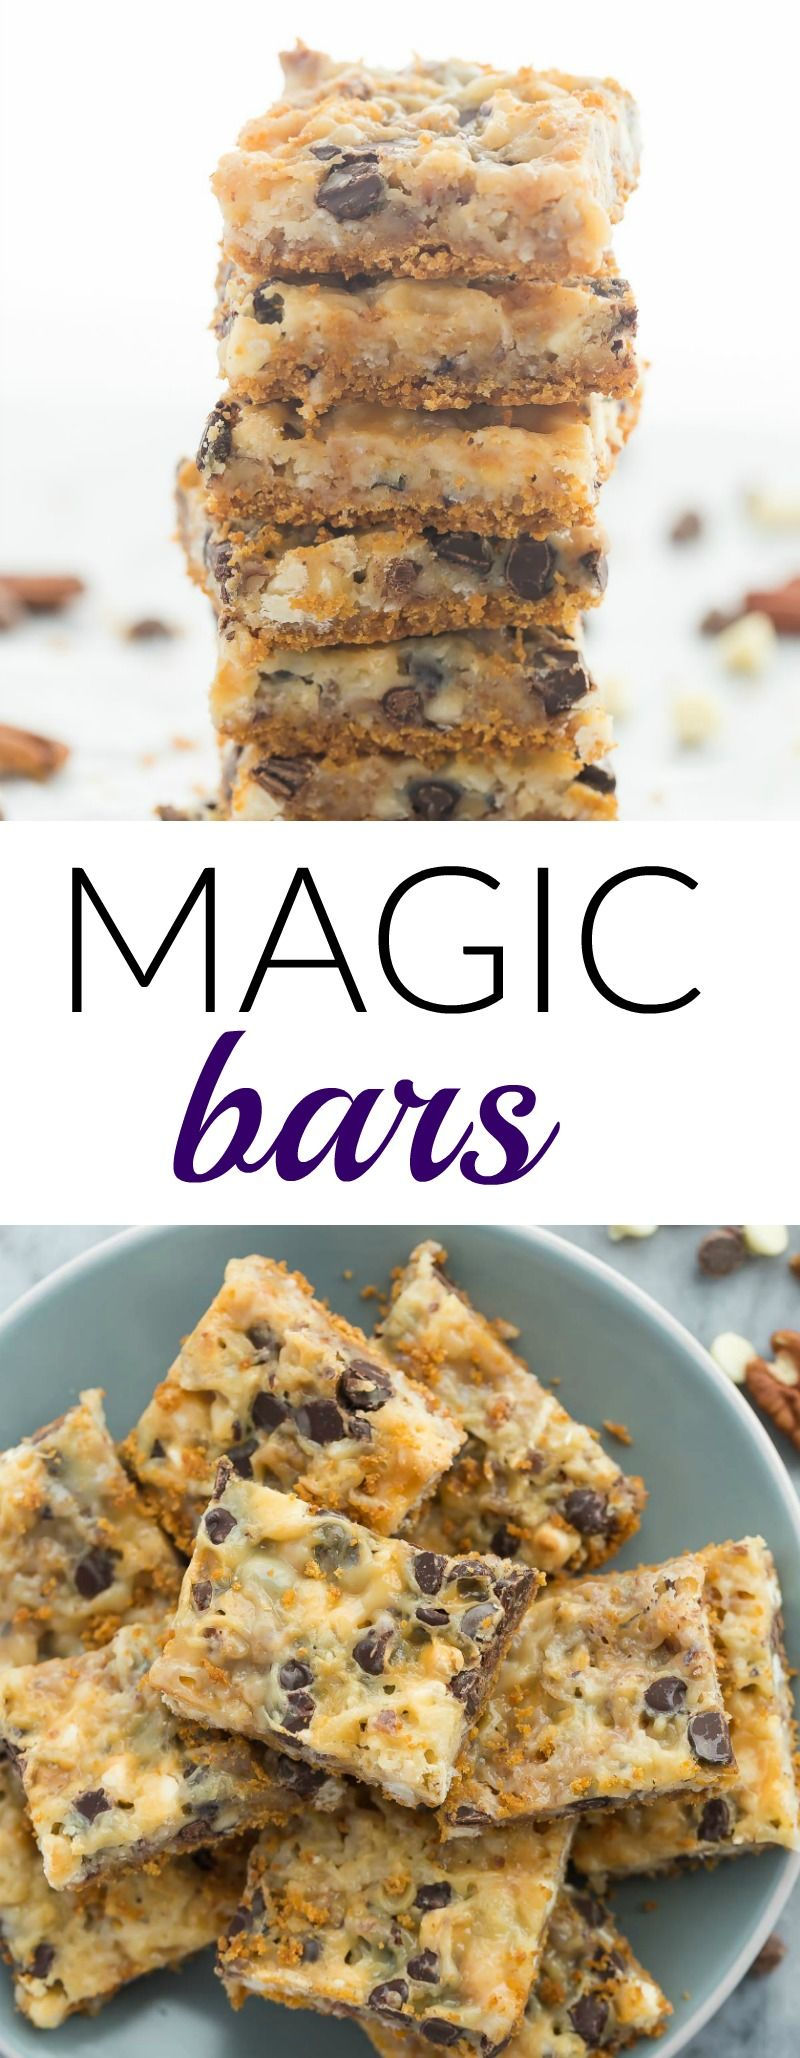 These 7 Layer Magic Bars Are Made With A Graham Cracker Base Chocolate Chips Nuts Coconut And Easy Dessert Bars Dessert Recipes Easy Graham Cracker Recipes